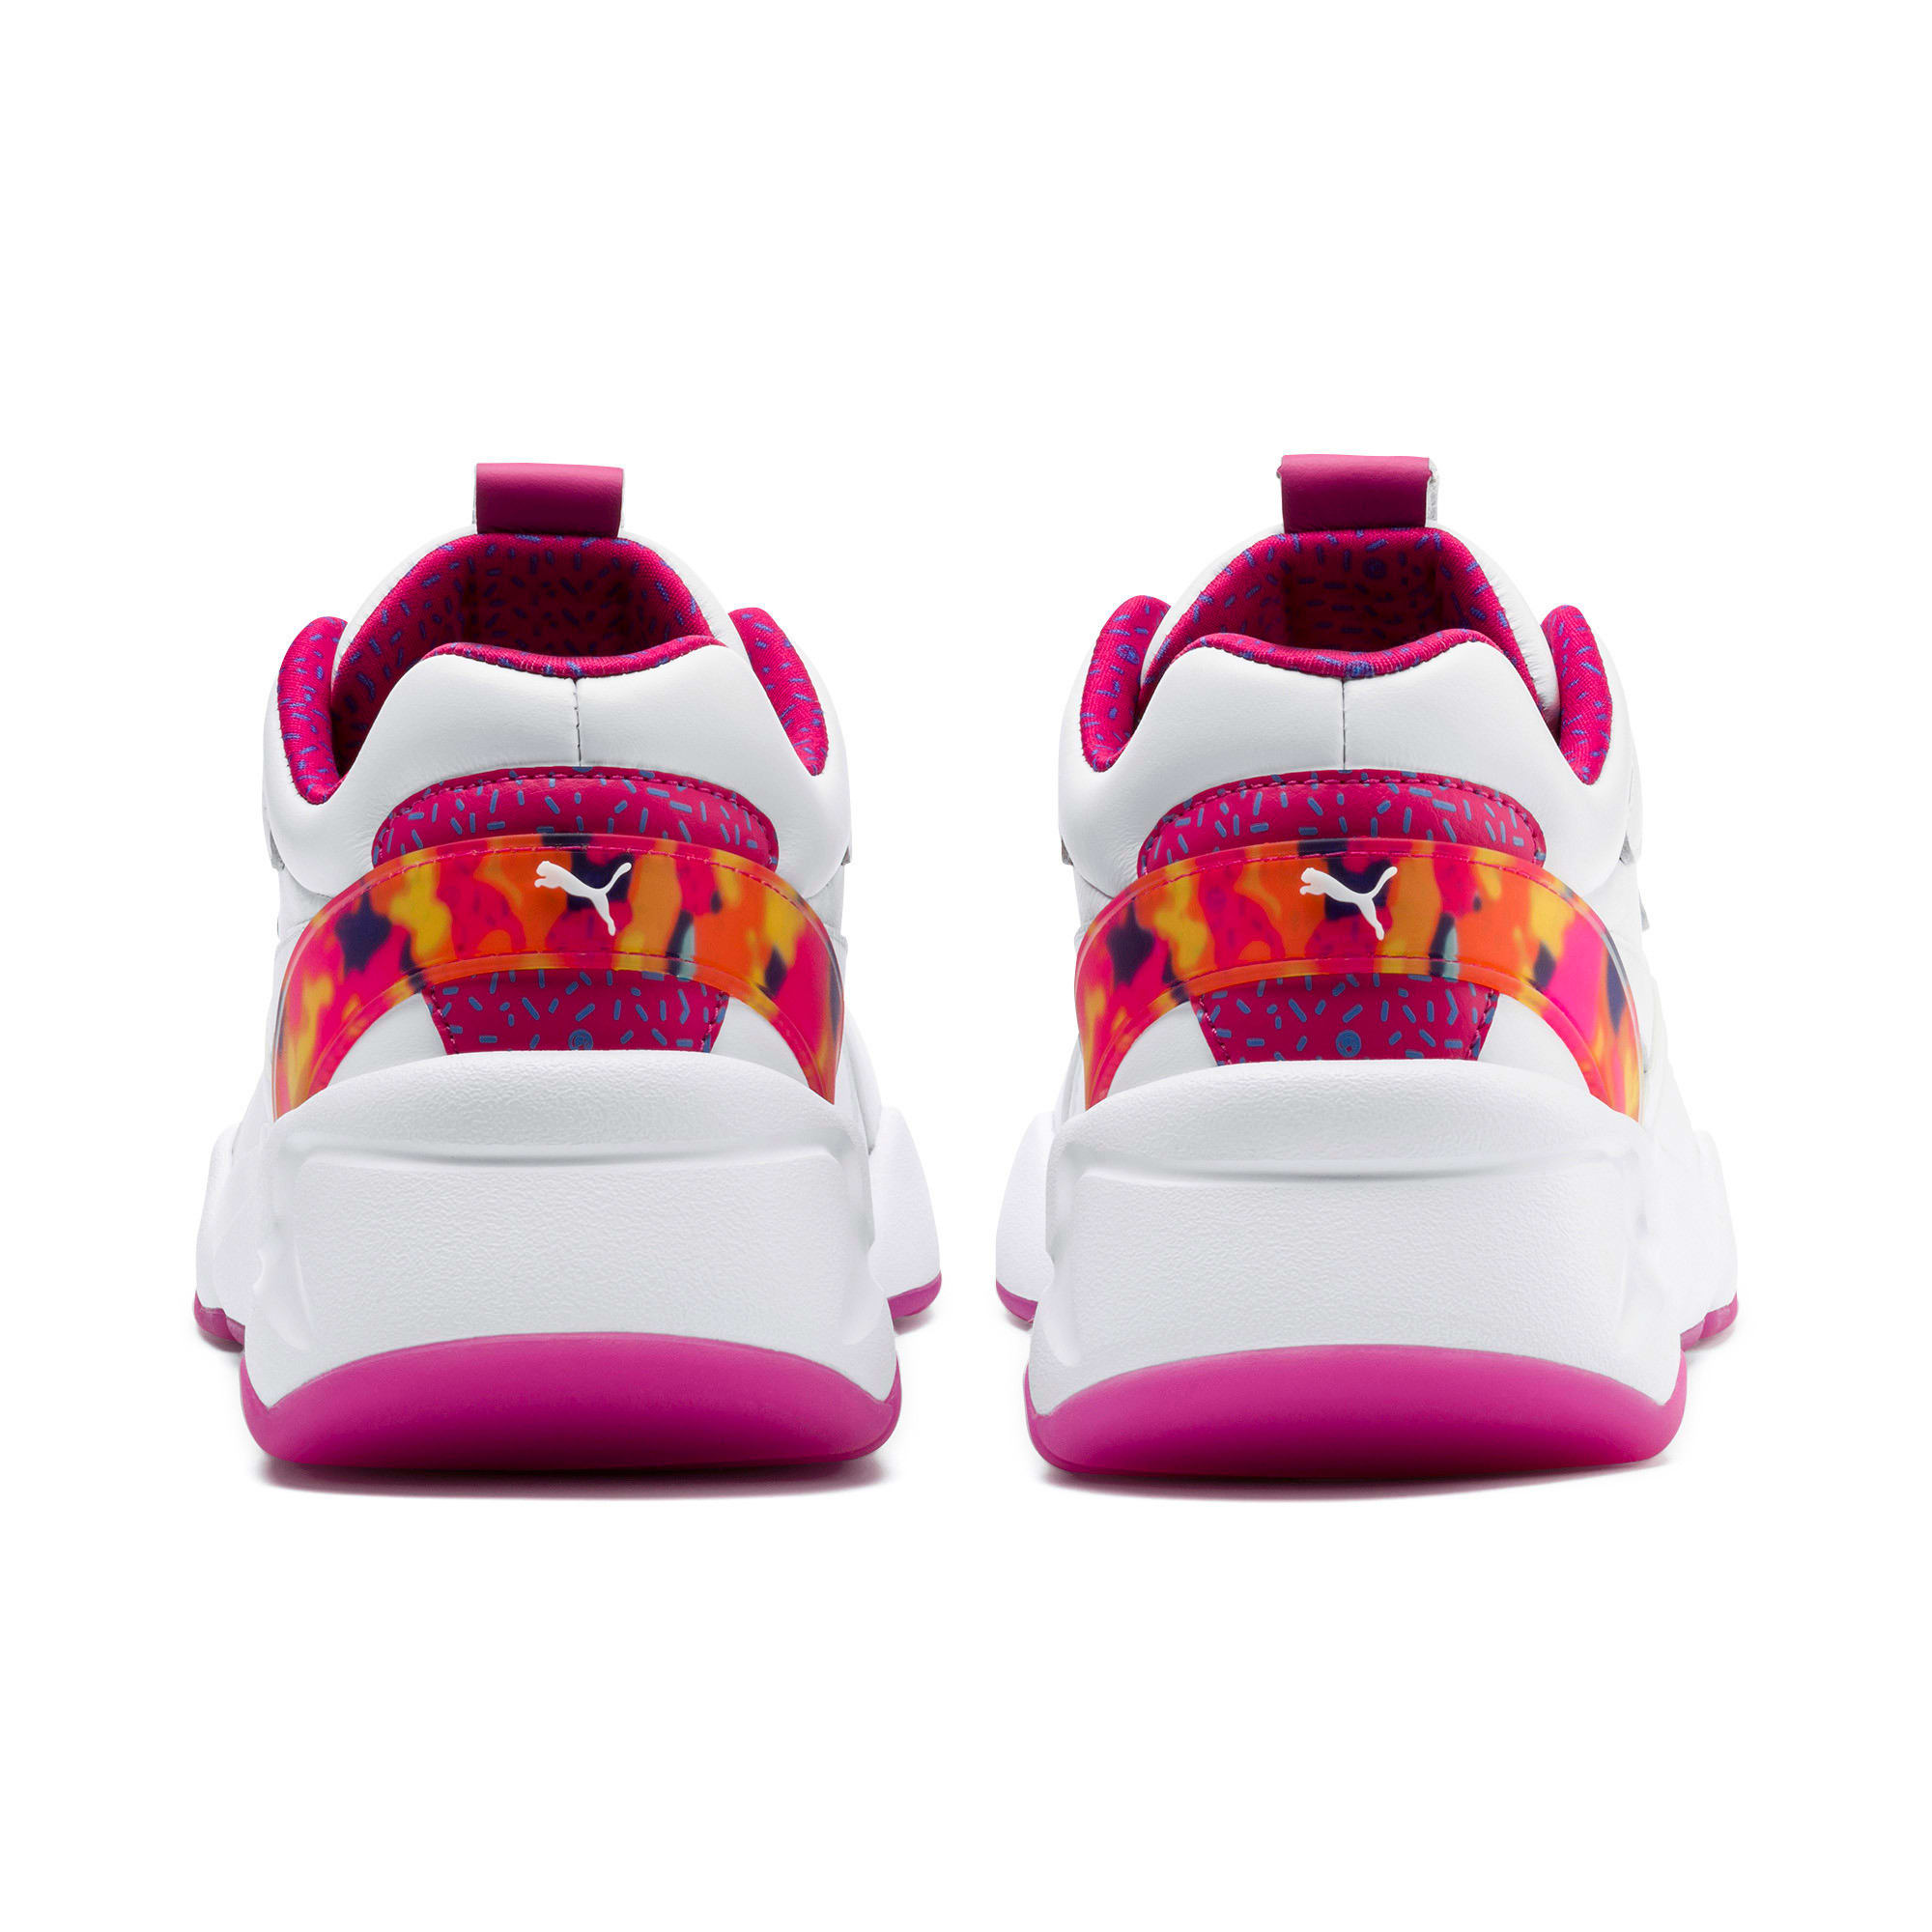 Thumbnail 3 of Nova x Barbie Flash Women's Sneakers, Puma White-CABARET, medium